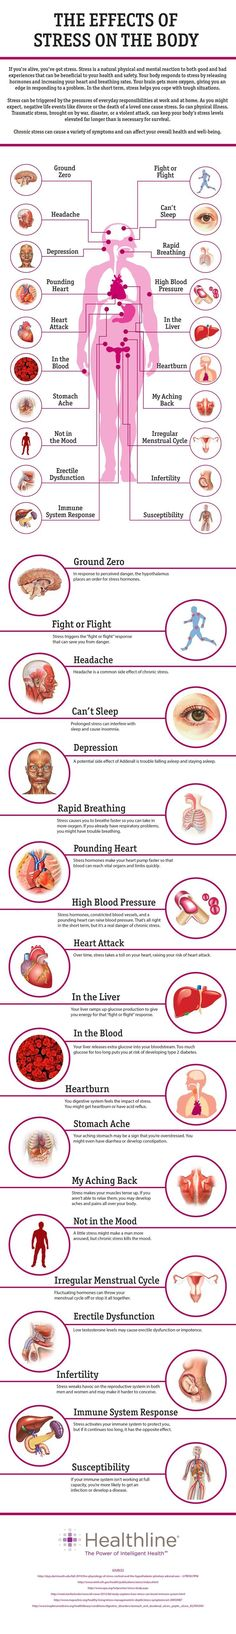 20 effects of stress on the body, and how to naturally reduce stress. Constant stress can increase your risk for long-term health issues like heart attack and diabetes. Learn the toll stress can take on the body. Health And Beauty, Health And Wellness, Health Tips, Mental Health, Health Care, Health Fitness, Wellness Mama, Wellness Quotes, Health Resources